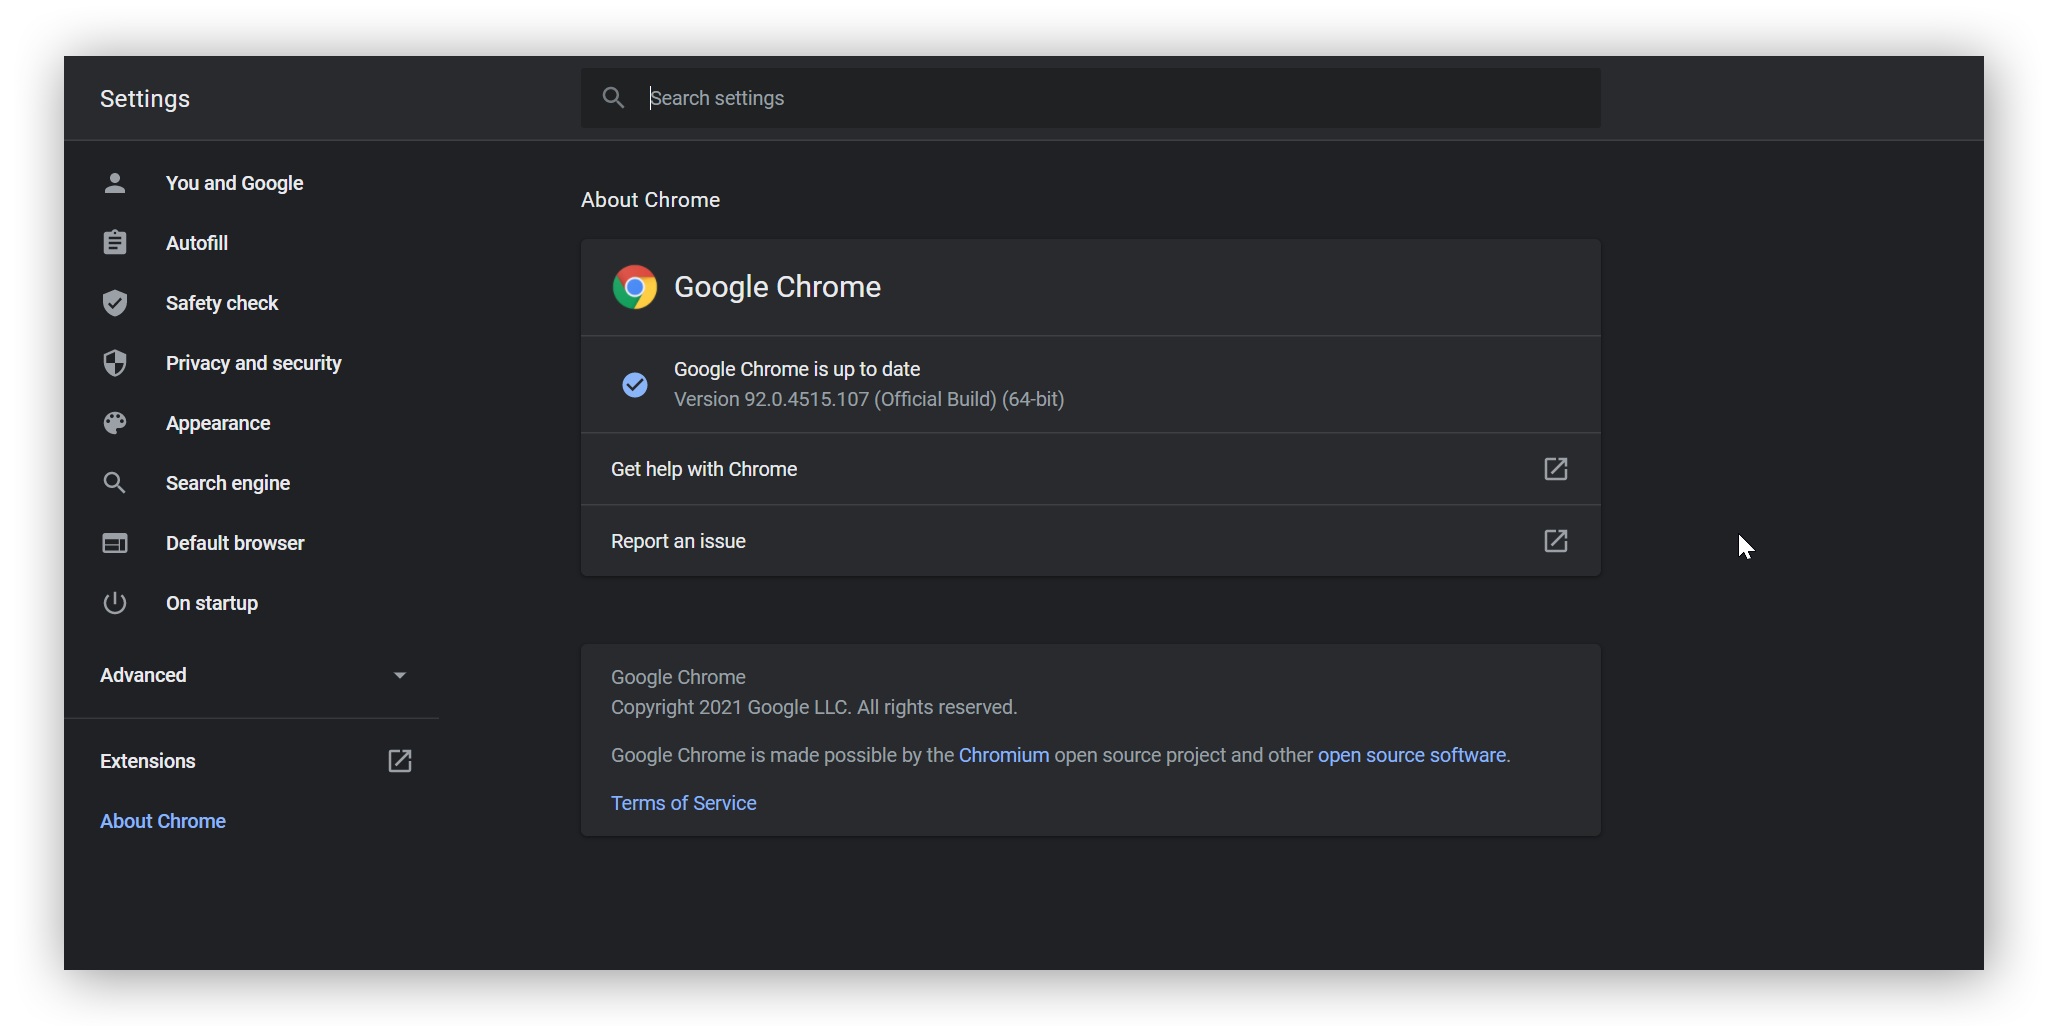 The About Google Chrome setting displayed, showing that Google Chrome is up to date.